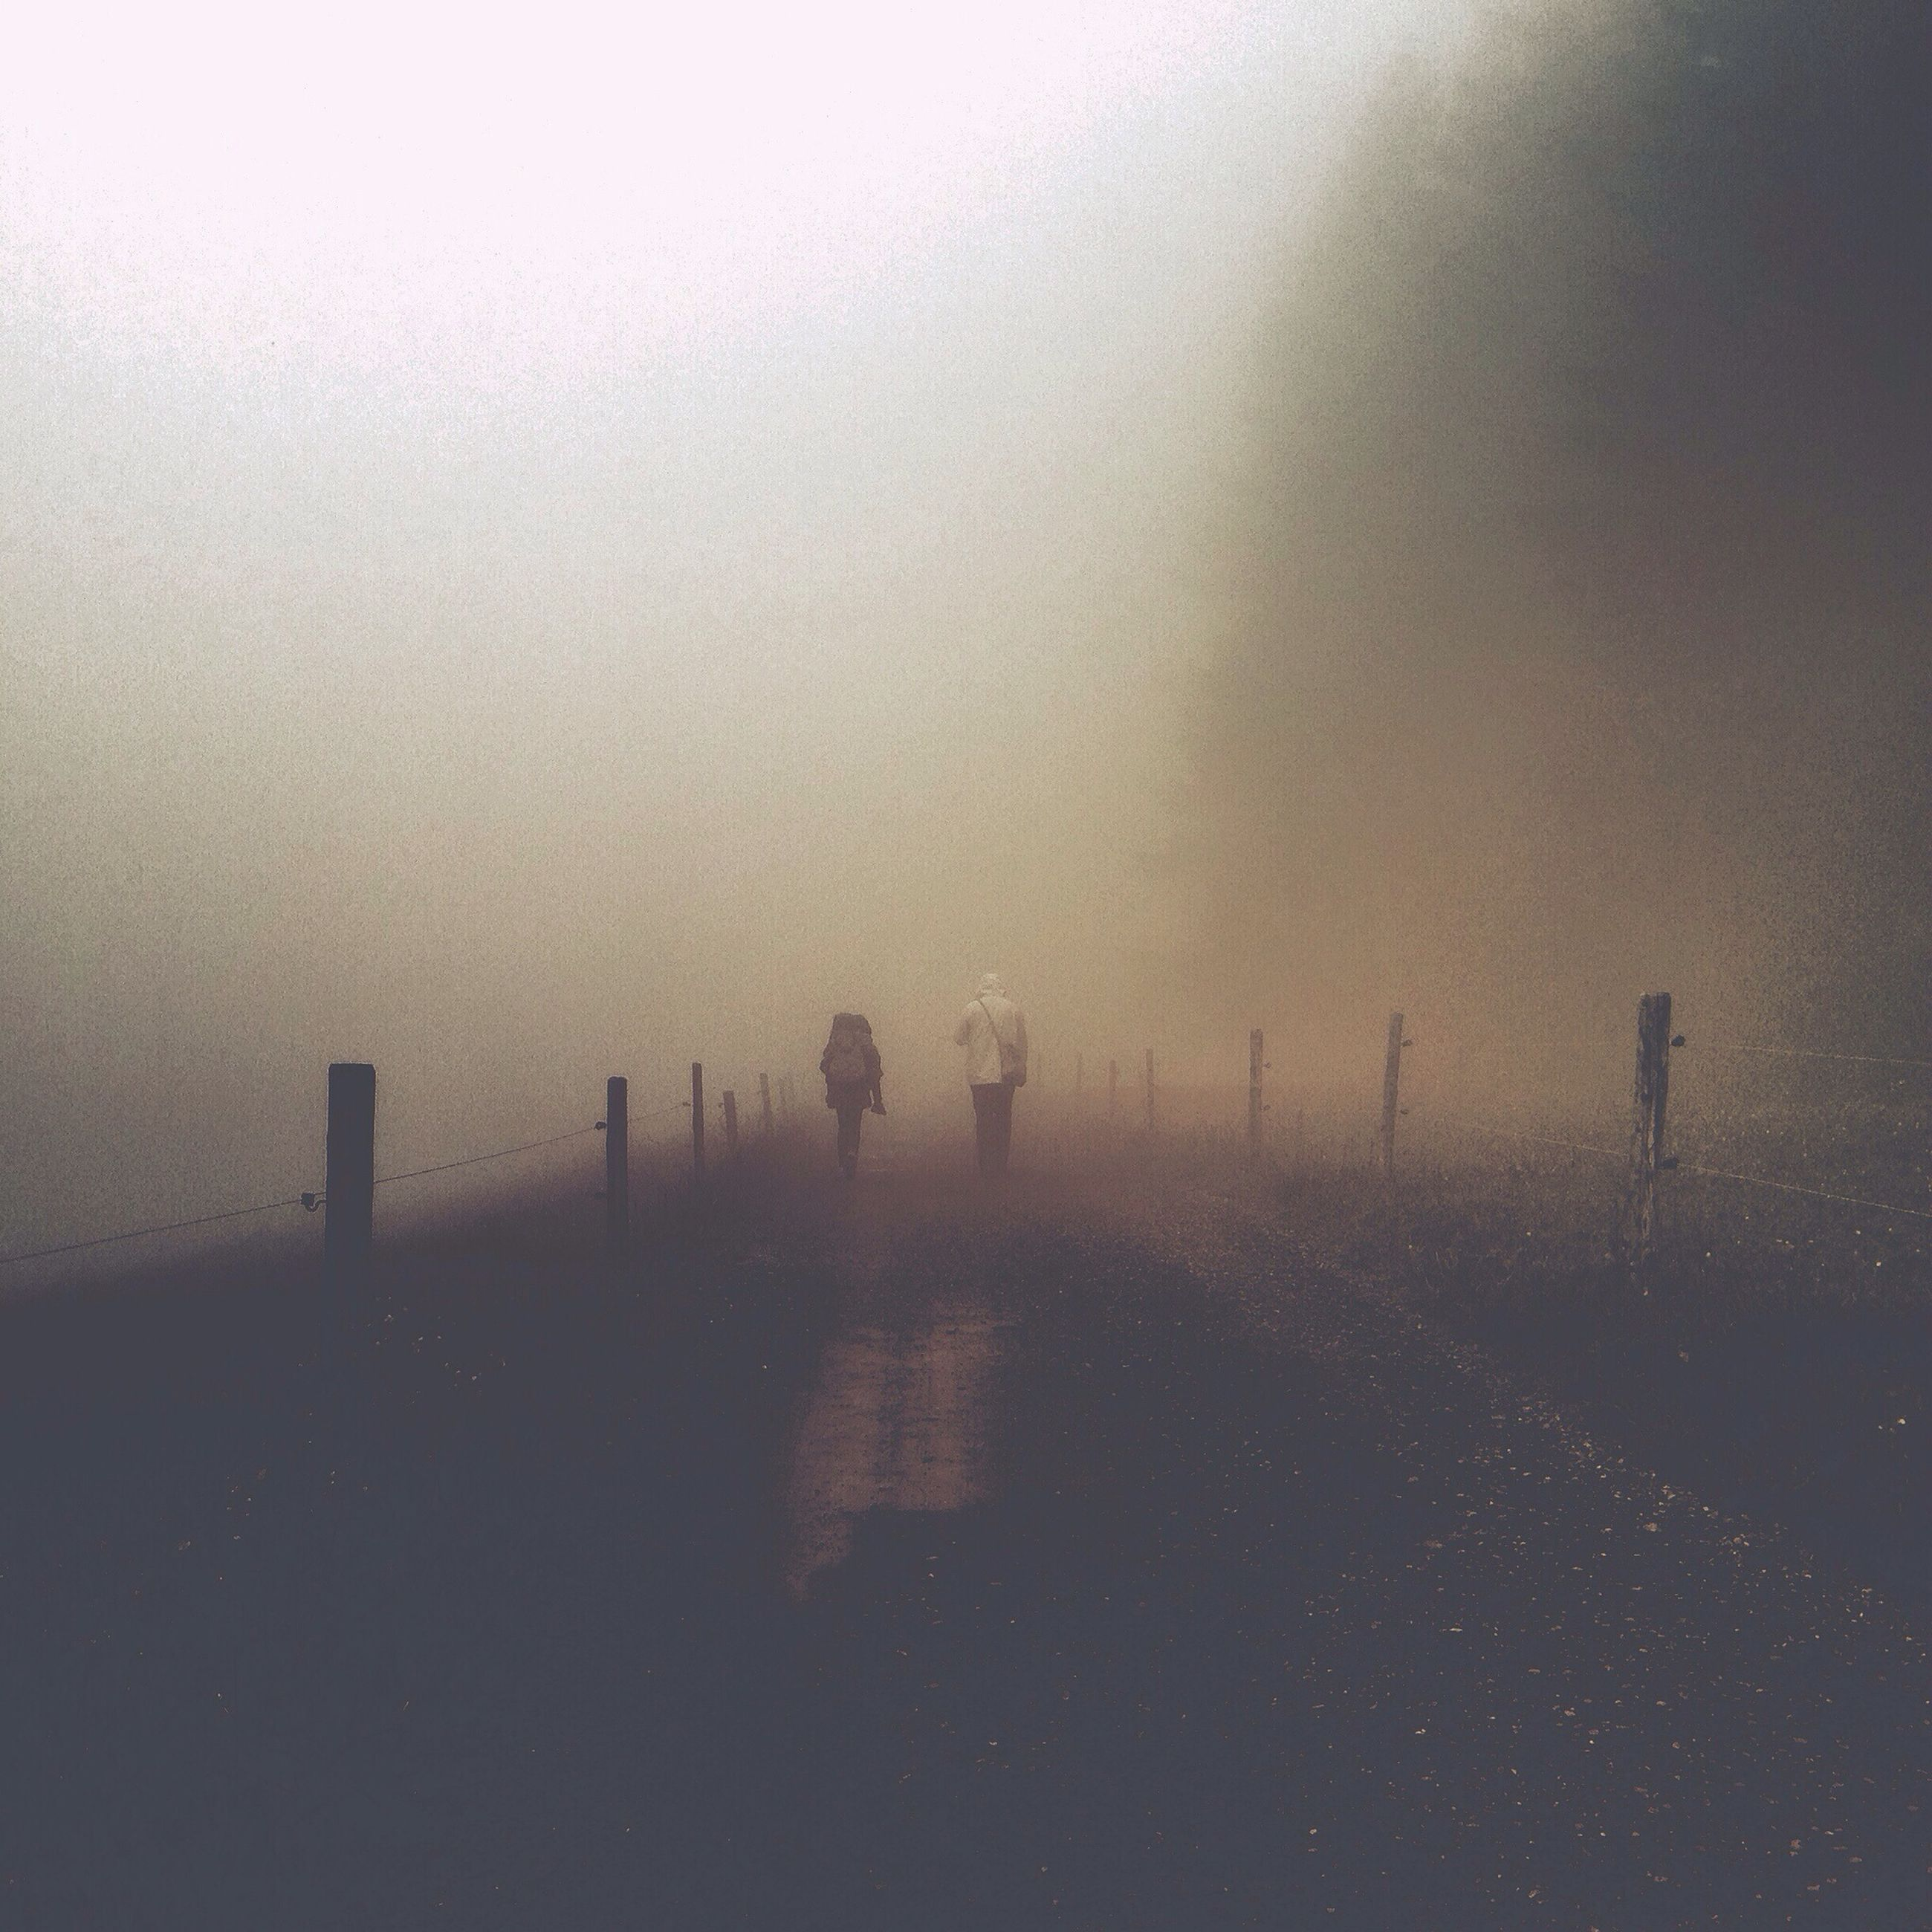 fog, silhouette, tranquility, sky, tranquil scene, foggy, copy space, weather, walking, nature, scenics, water, unrecognizable person, the way forward, beauty in nature, sea, dusk, men, sunset